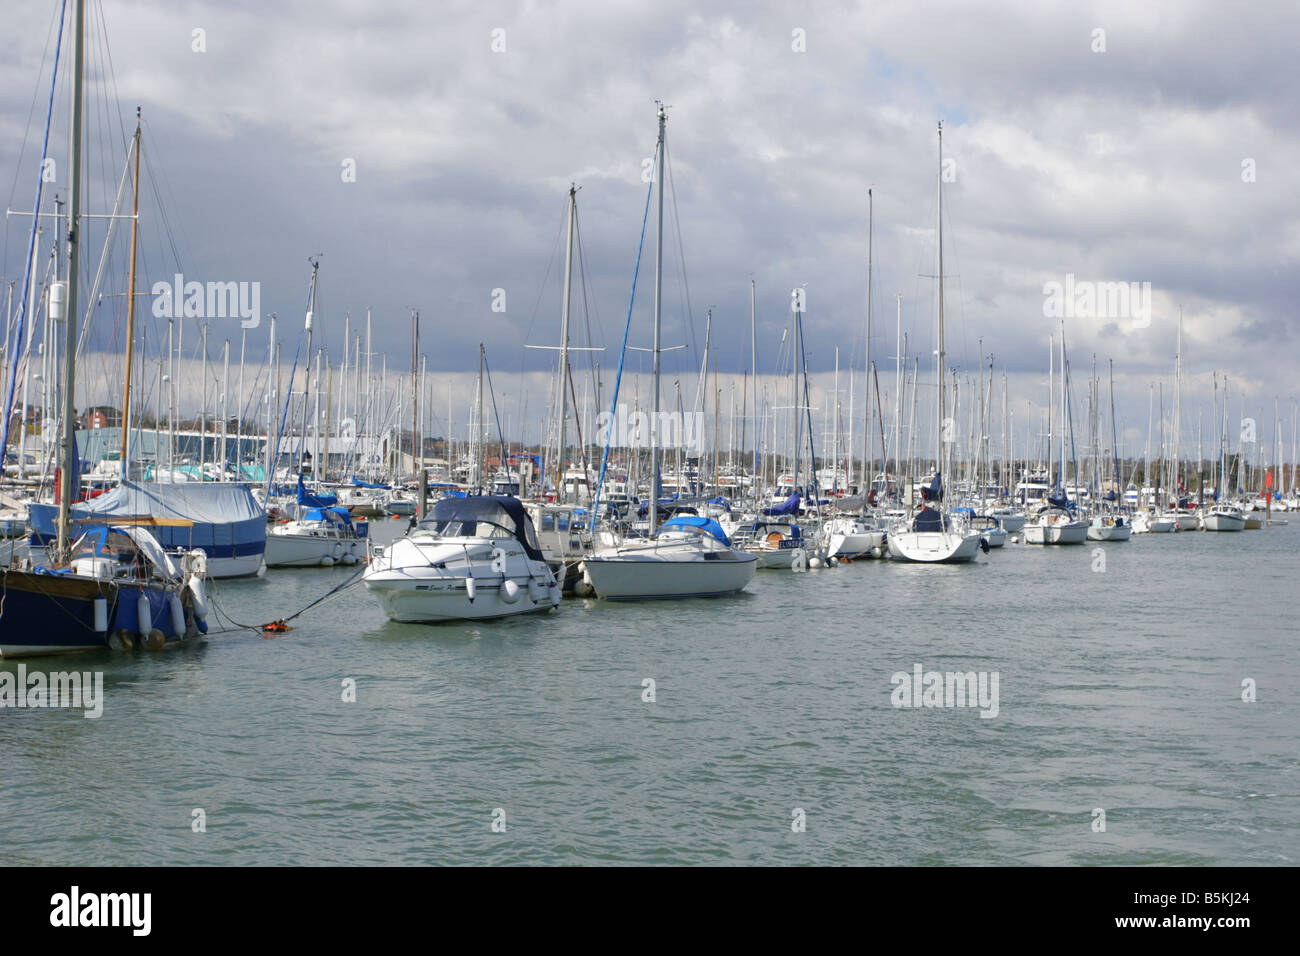 Yates en Lymington Marina tomadas Abril Lymington Hampshire UK Imagen De Stock